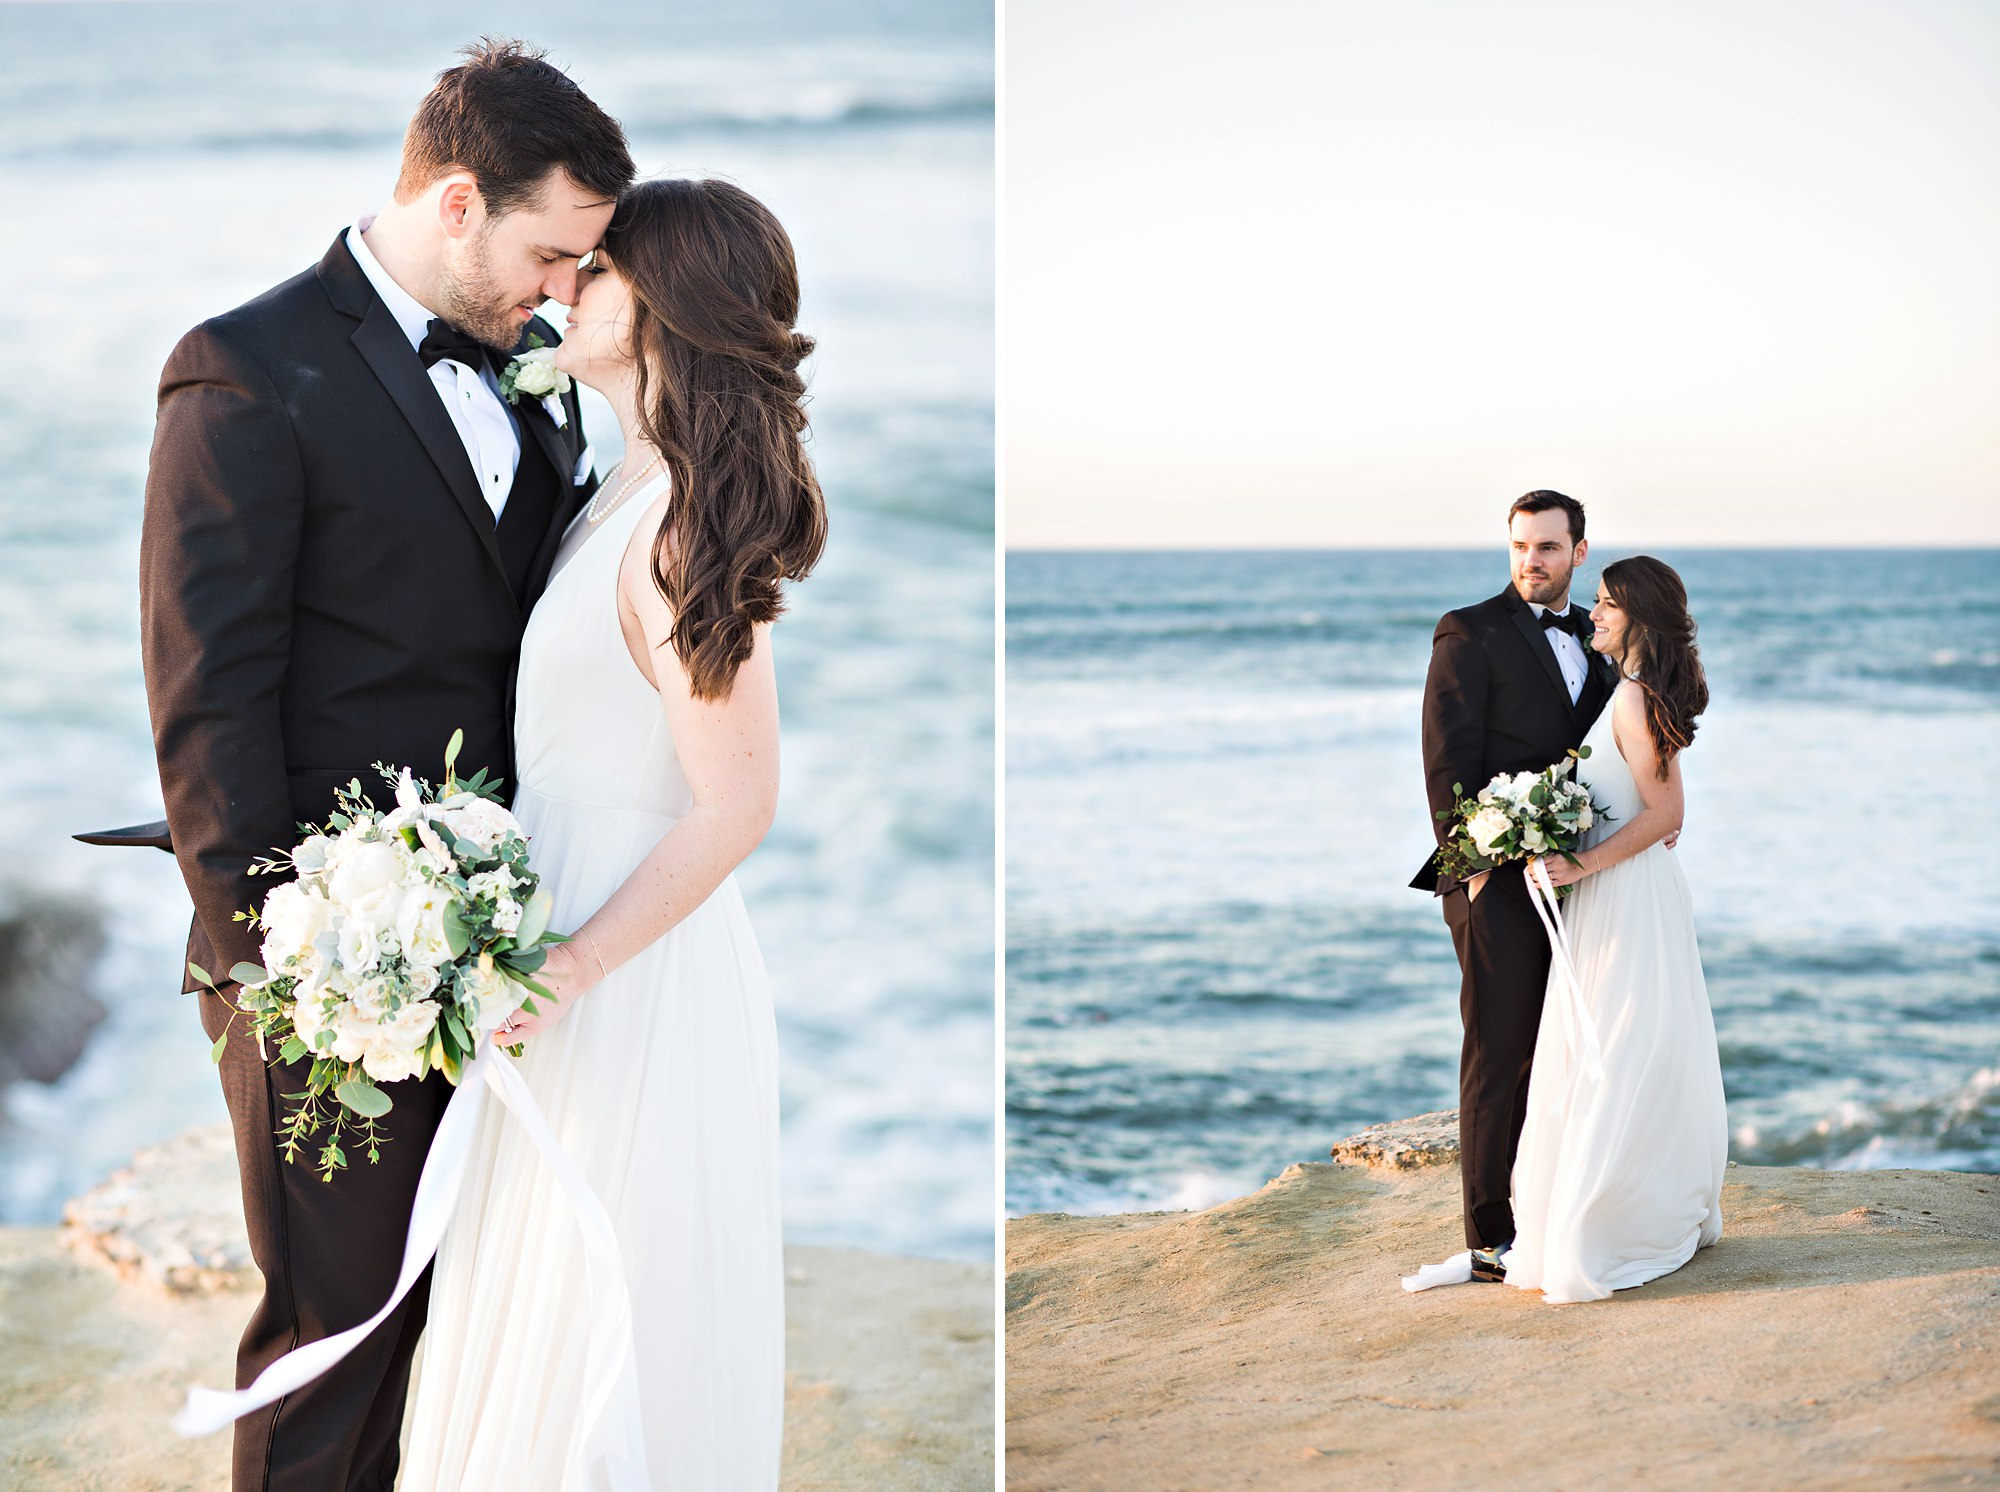 San Diego Wedding Photographer - Evelyn Molina_0004.jpg